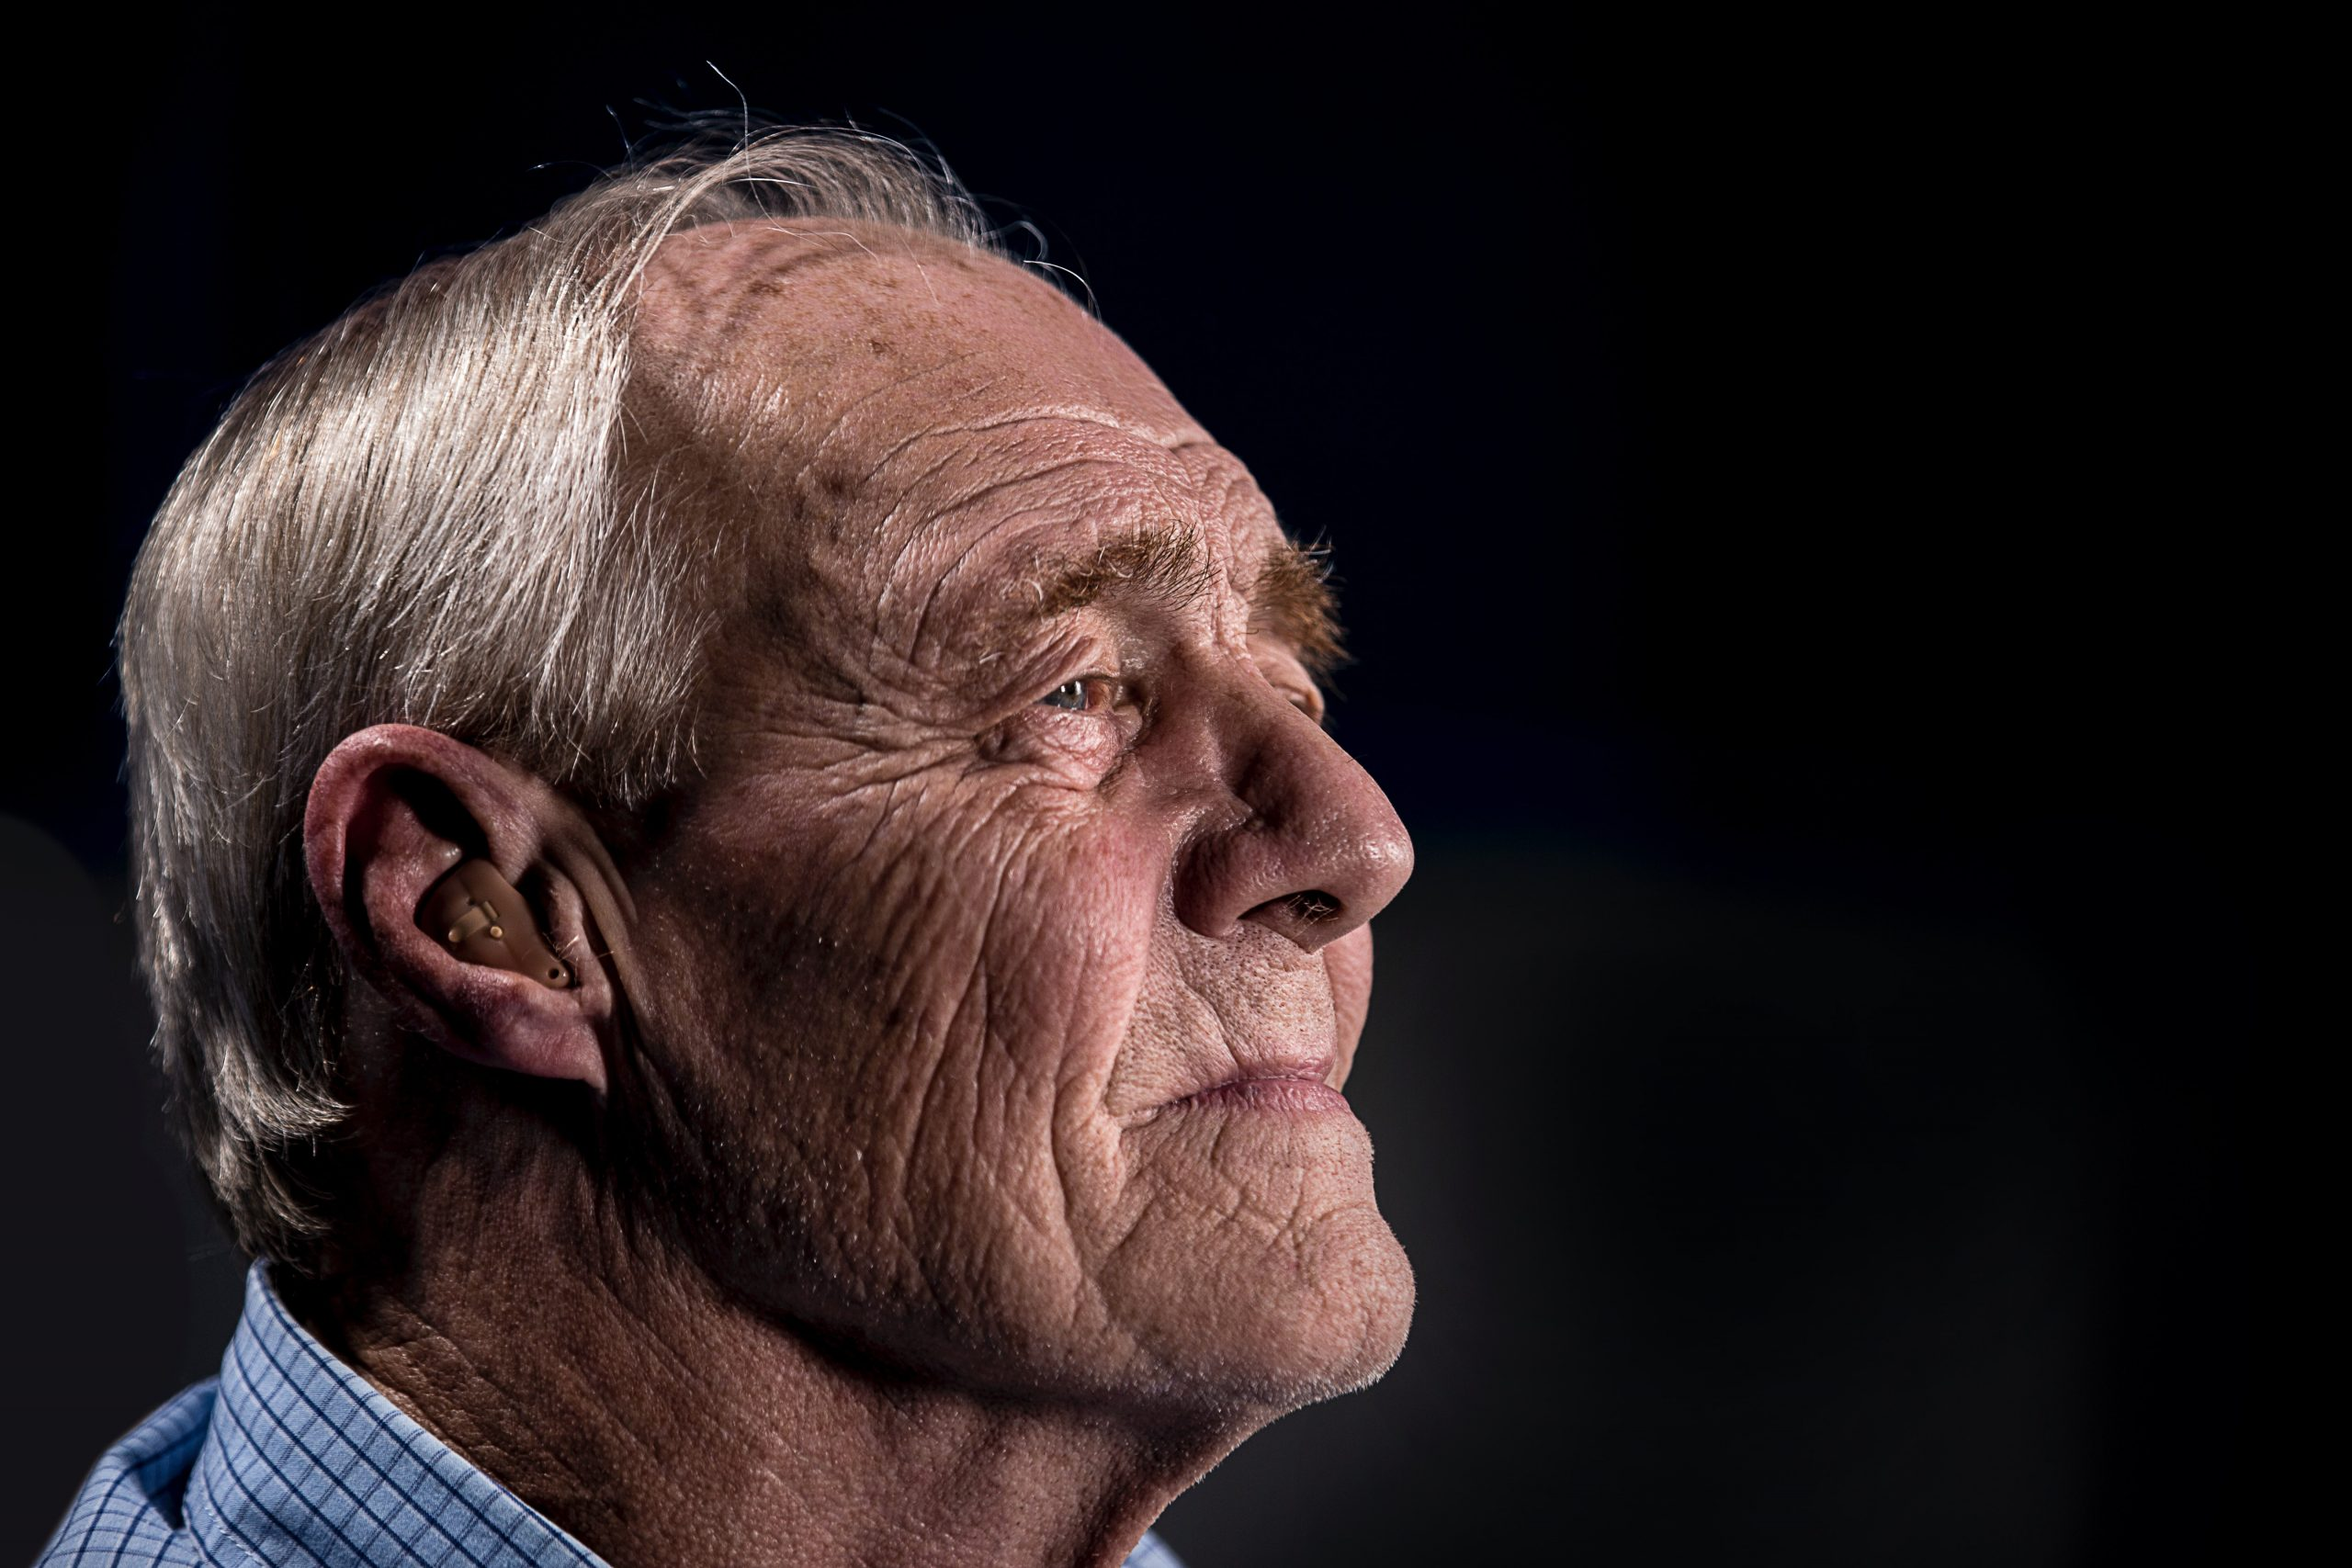 Old man wearing a hearing aid